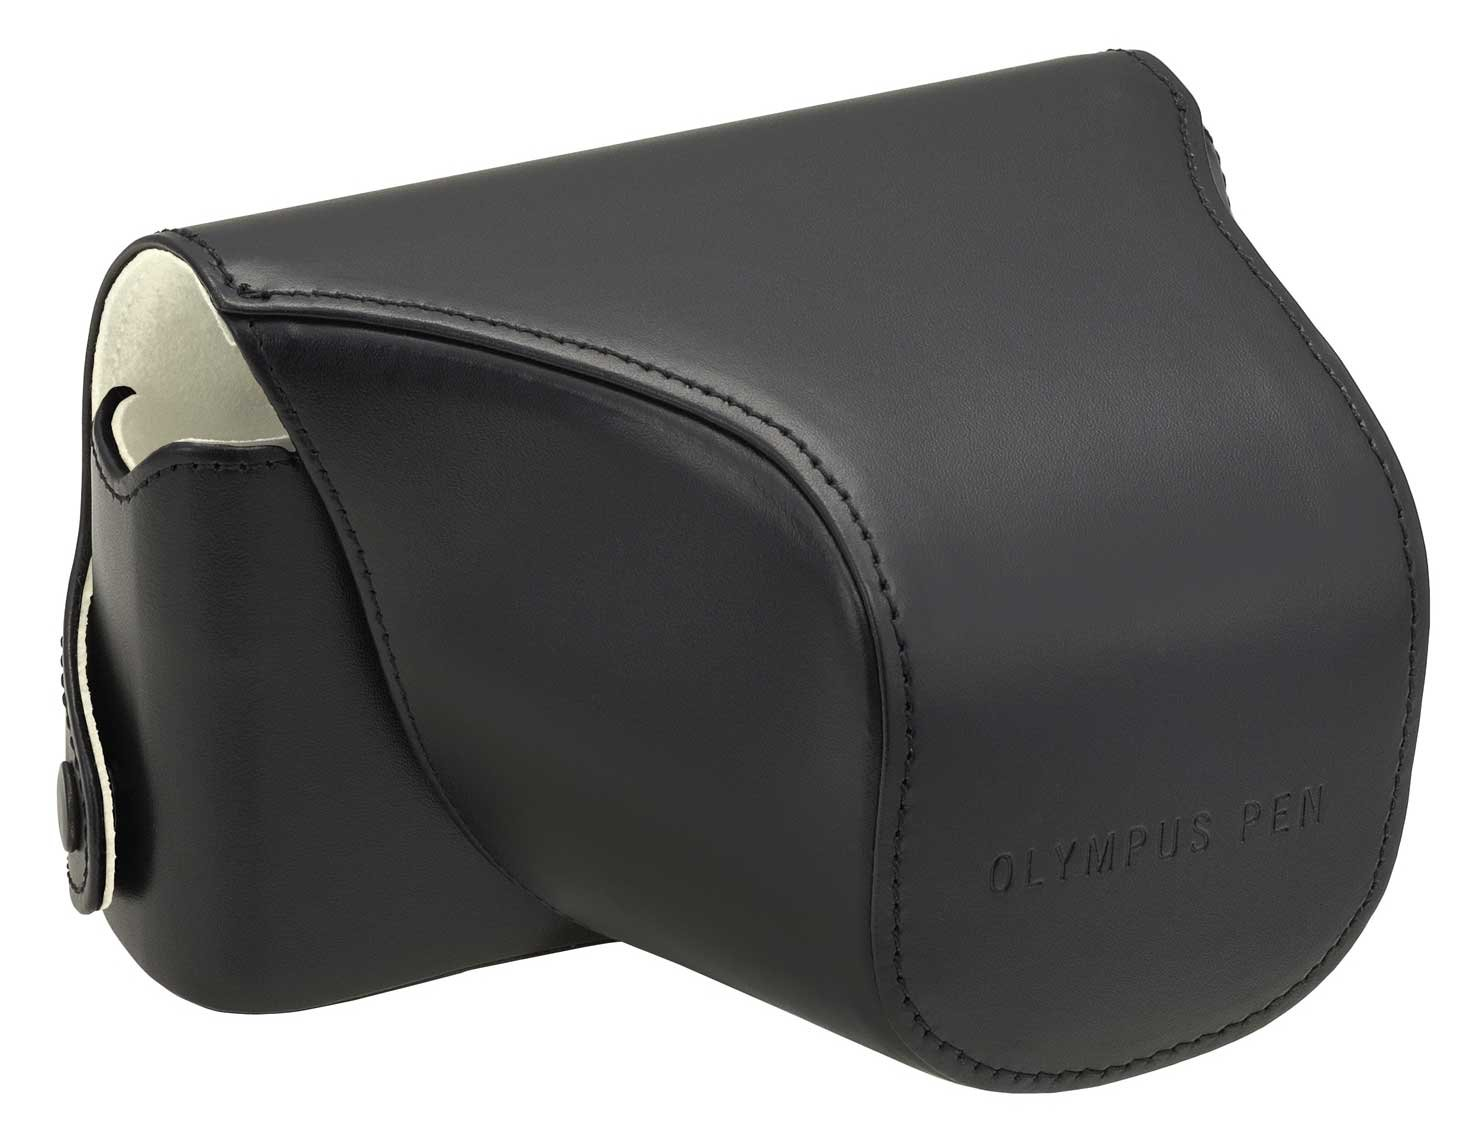 OLYMPUS Body and Lens Jacket Case Kit Mirror Interchangeable Lens for Leather Black Cs-12blmblk